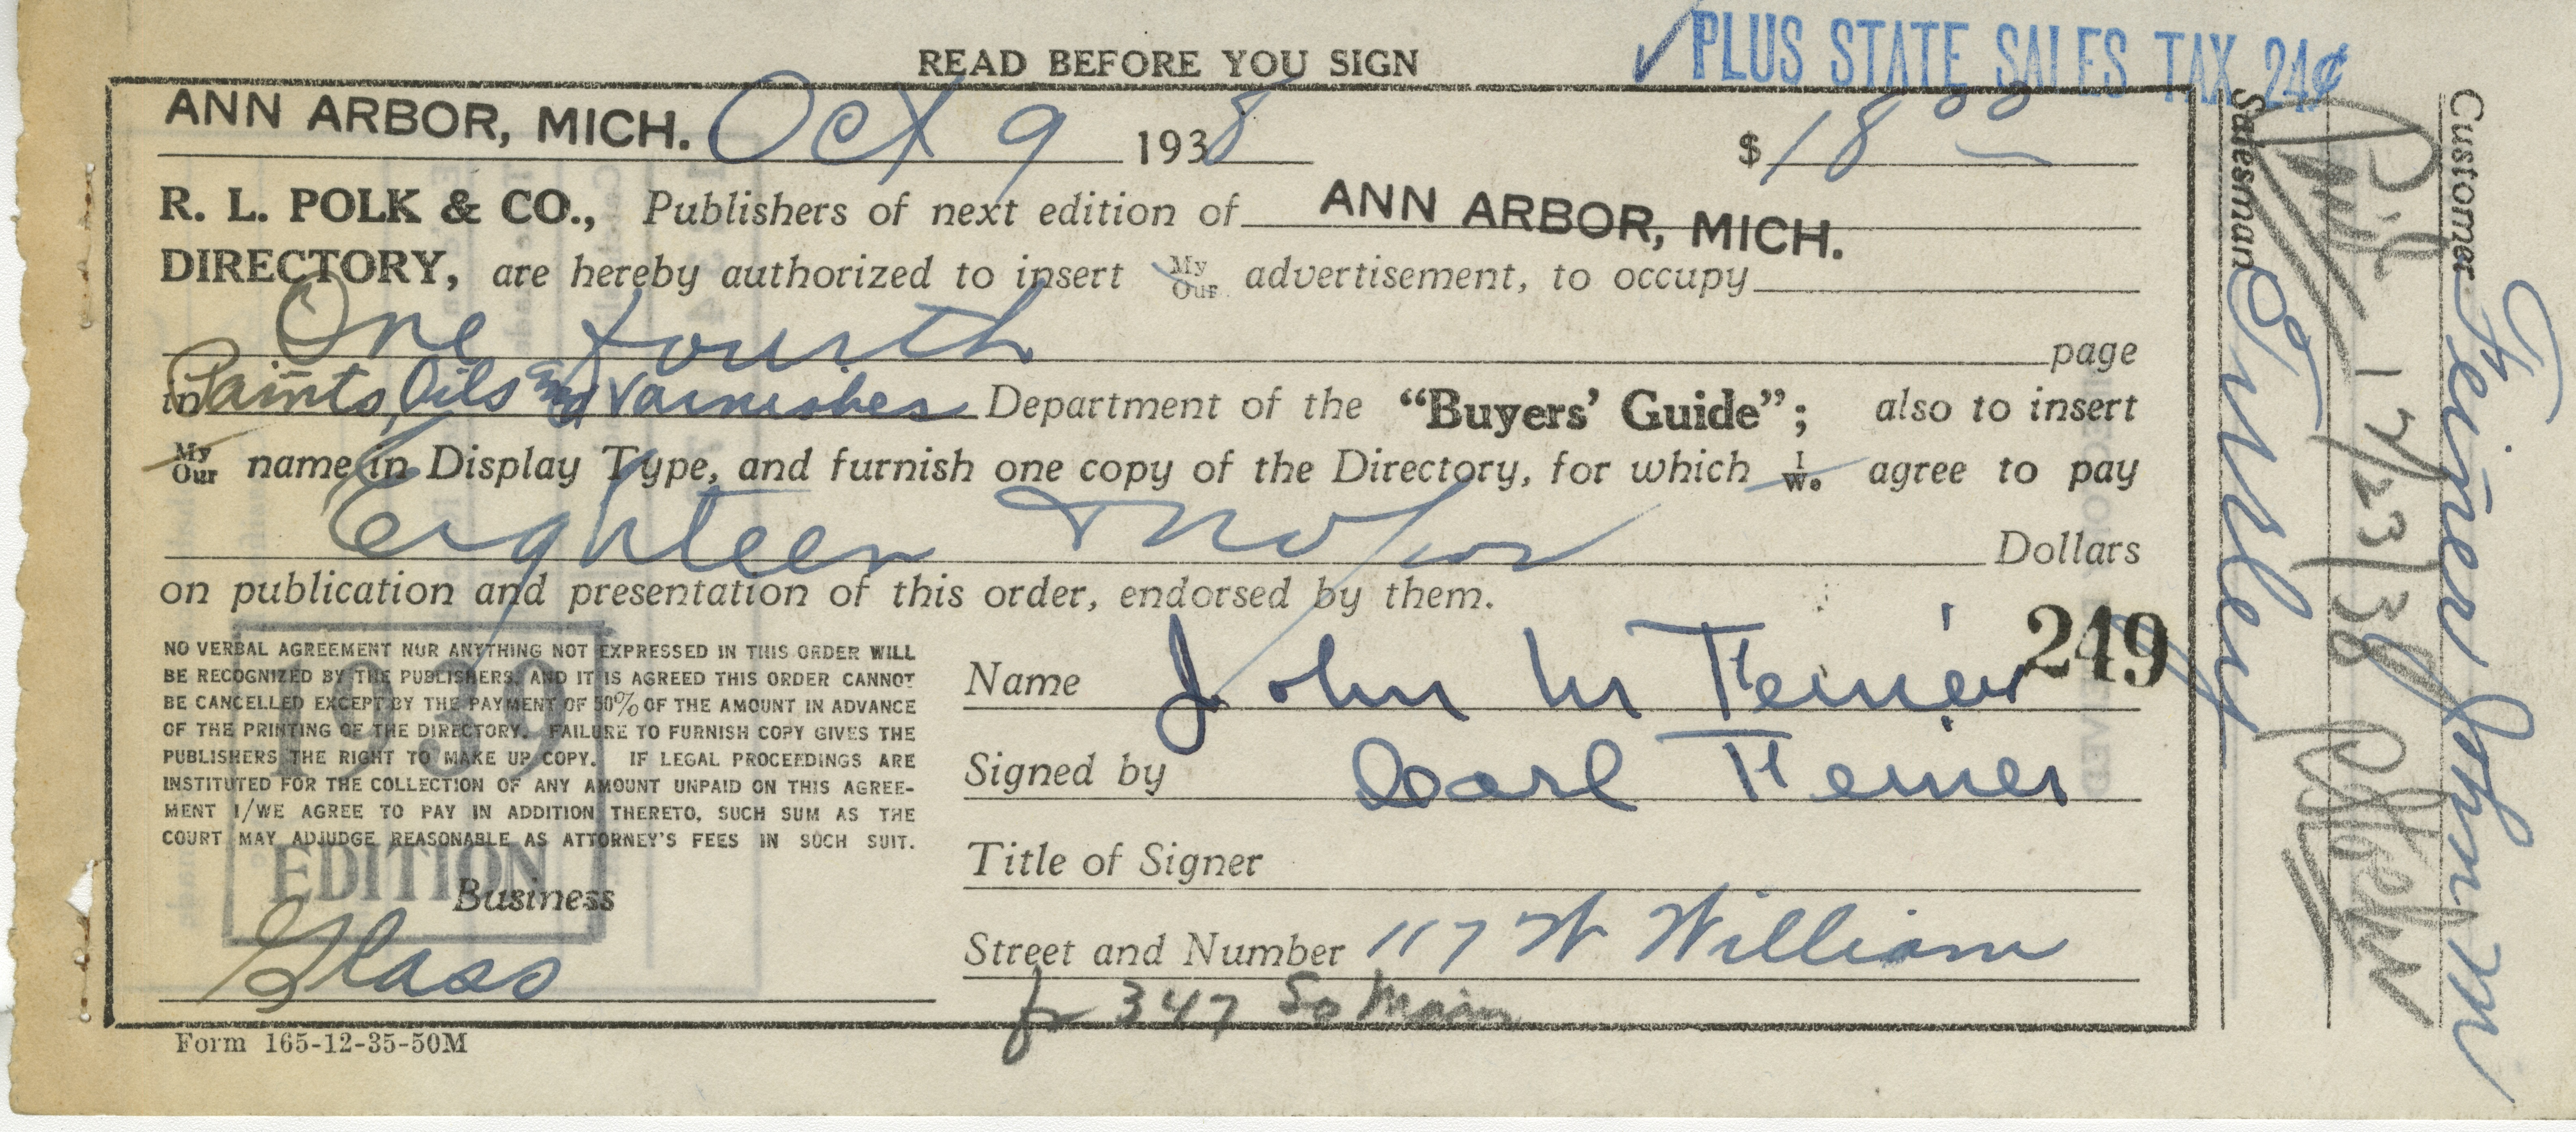 Receipt for authorization of 1/4 paid advertisement in 1939 Ann Arbor City Directory, by John M. Feiner, on Behalf of John M. Feiner Paints, Oils, Glass and Glazing, October 9, 1938 image